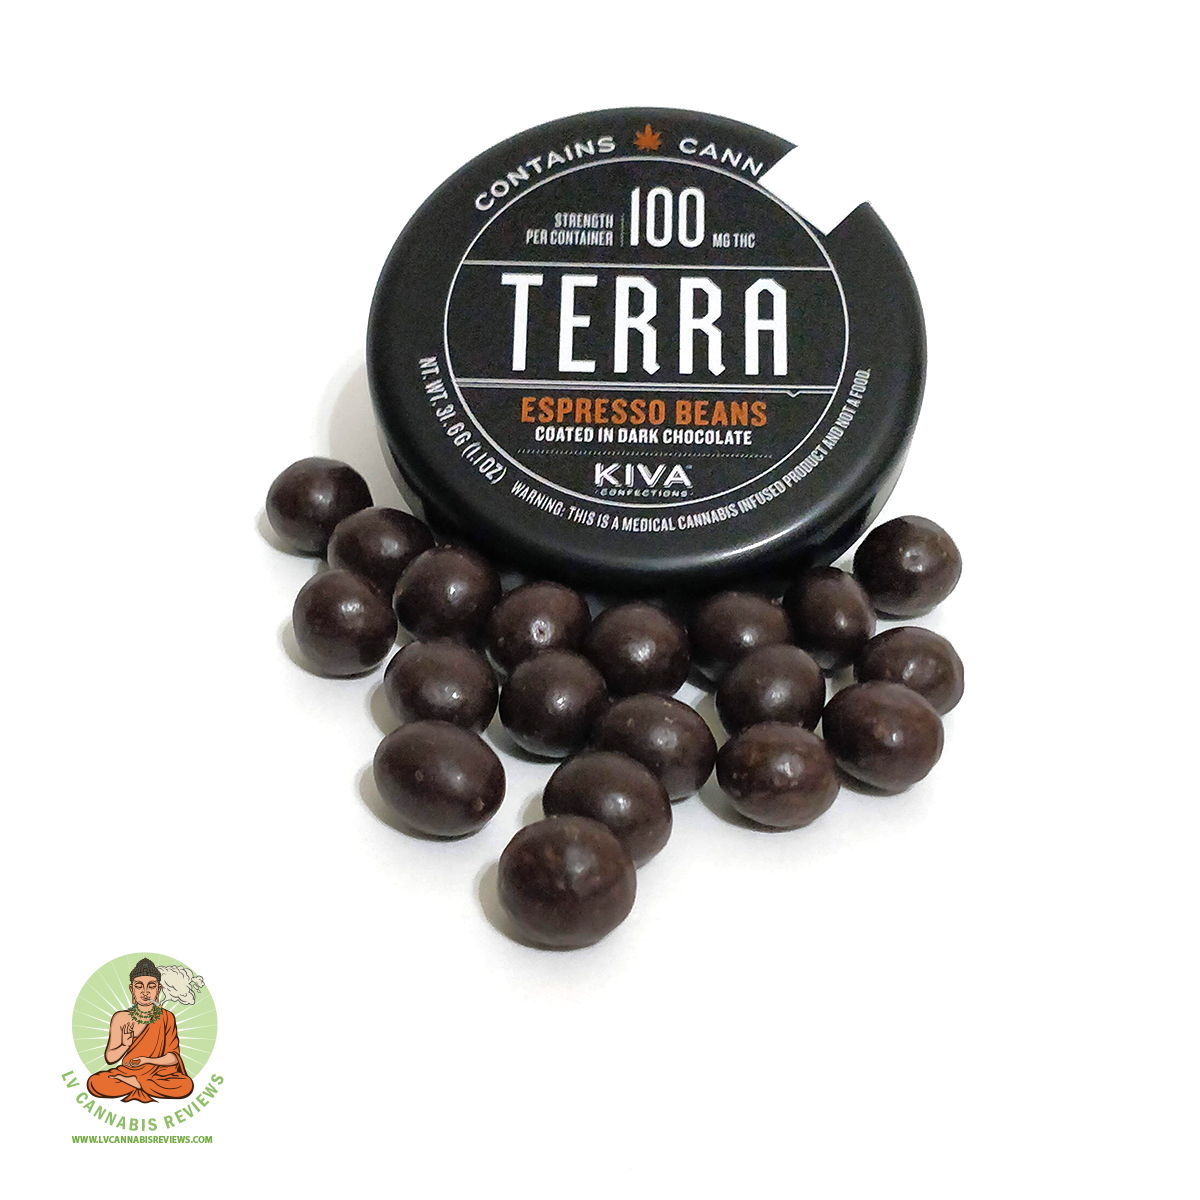 KIVA Confections Terra Bites chocolate coated espresso beans Review November 2019 Nature's Care Dispensary